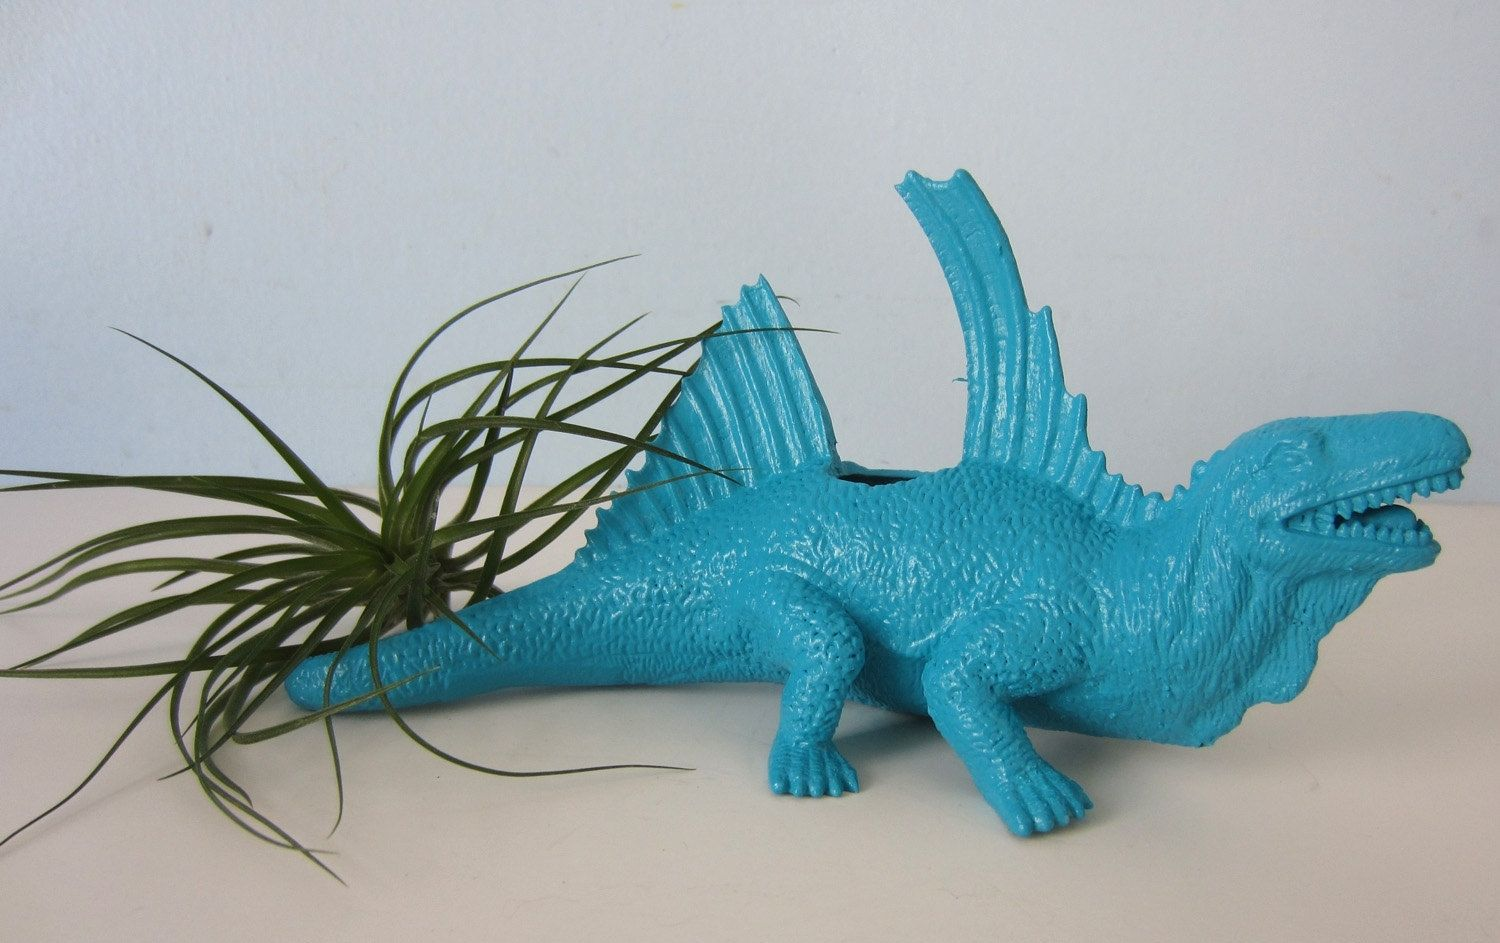 Hand Refinished Repurposed Toy Dinosaur Planter comes with a small air plant.